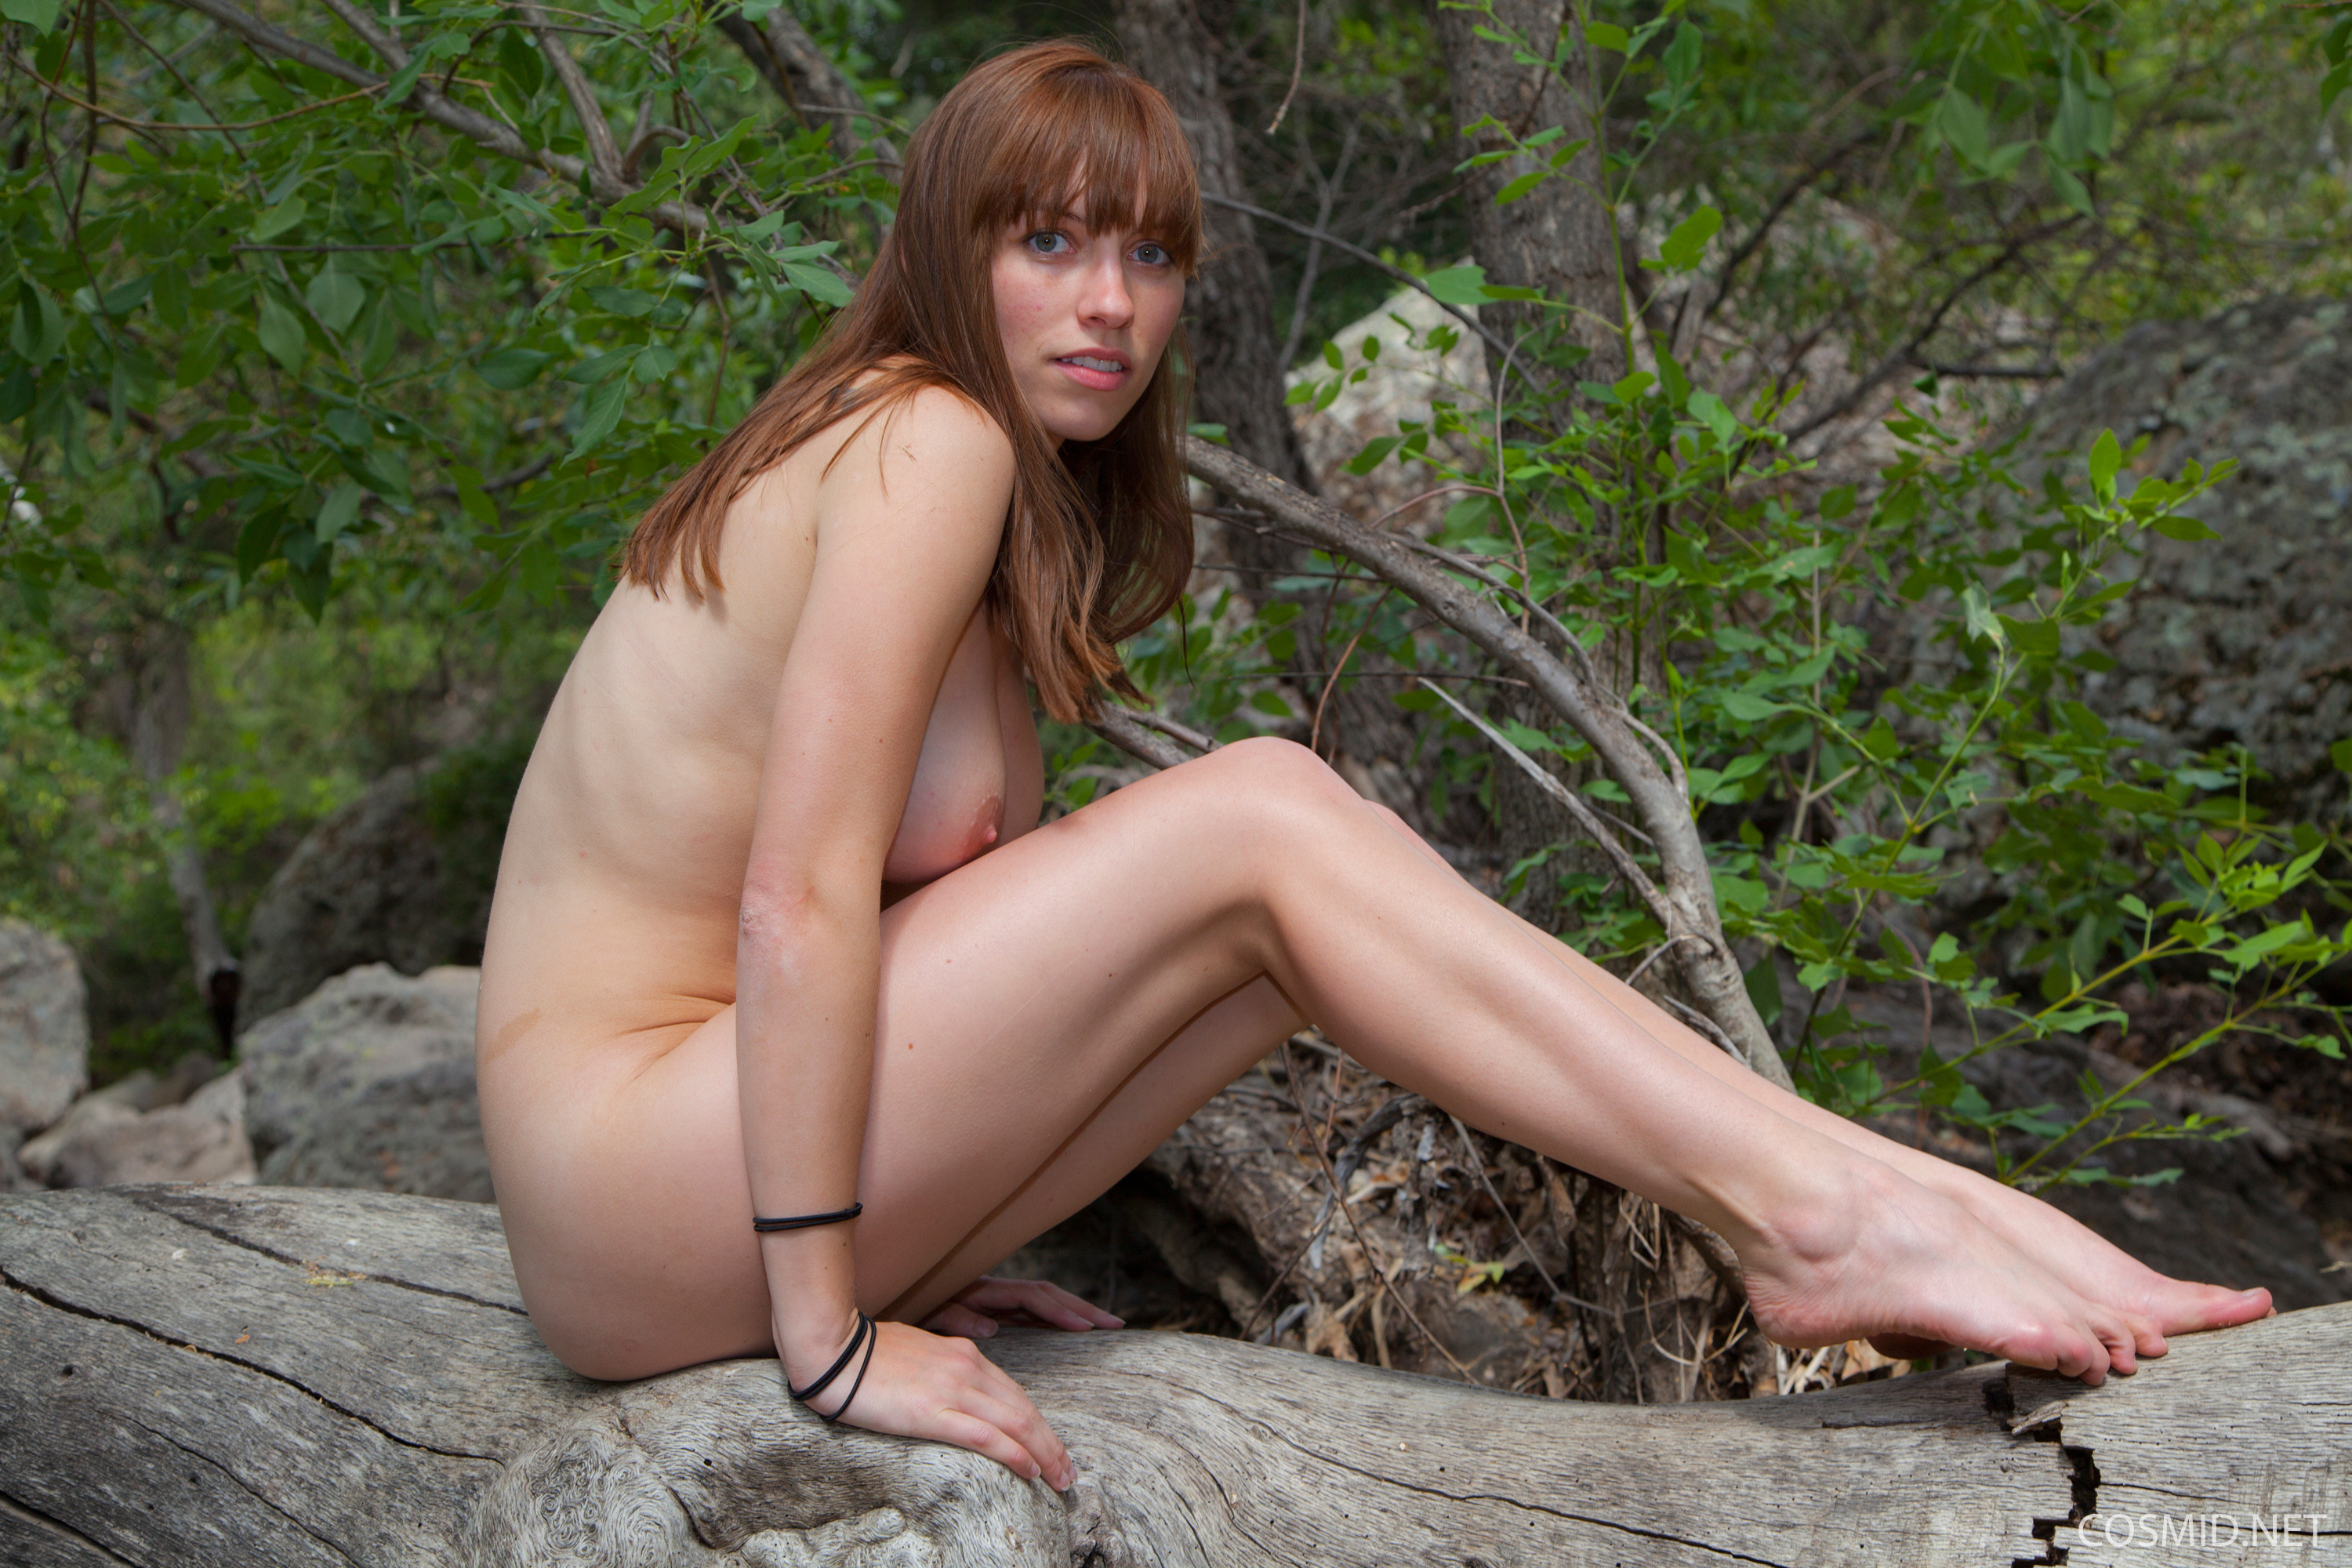 Jessica came with her husband to fishing » 100% Fapability ...